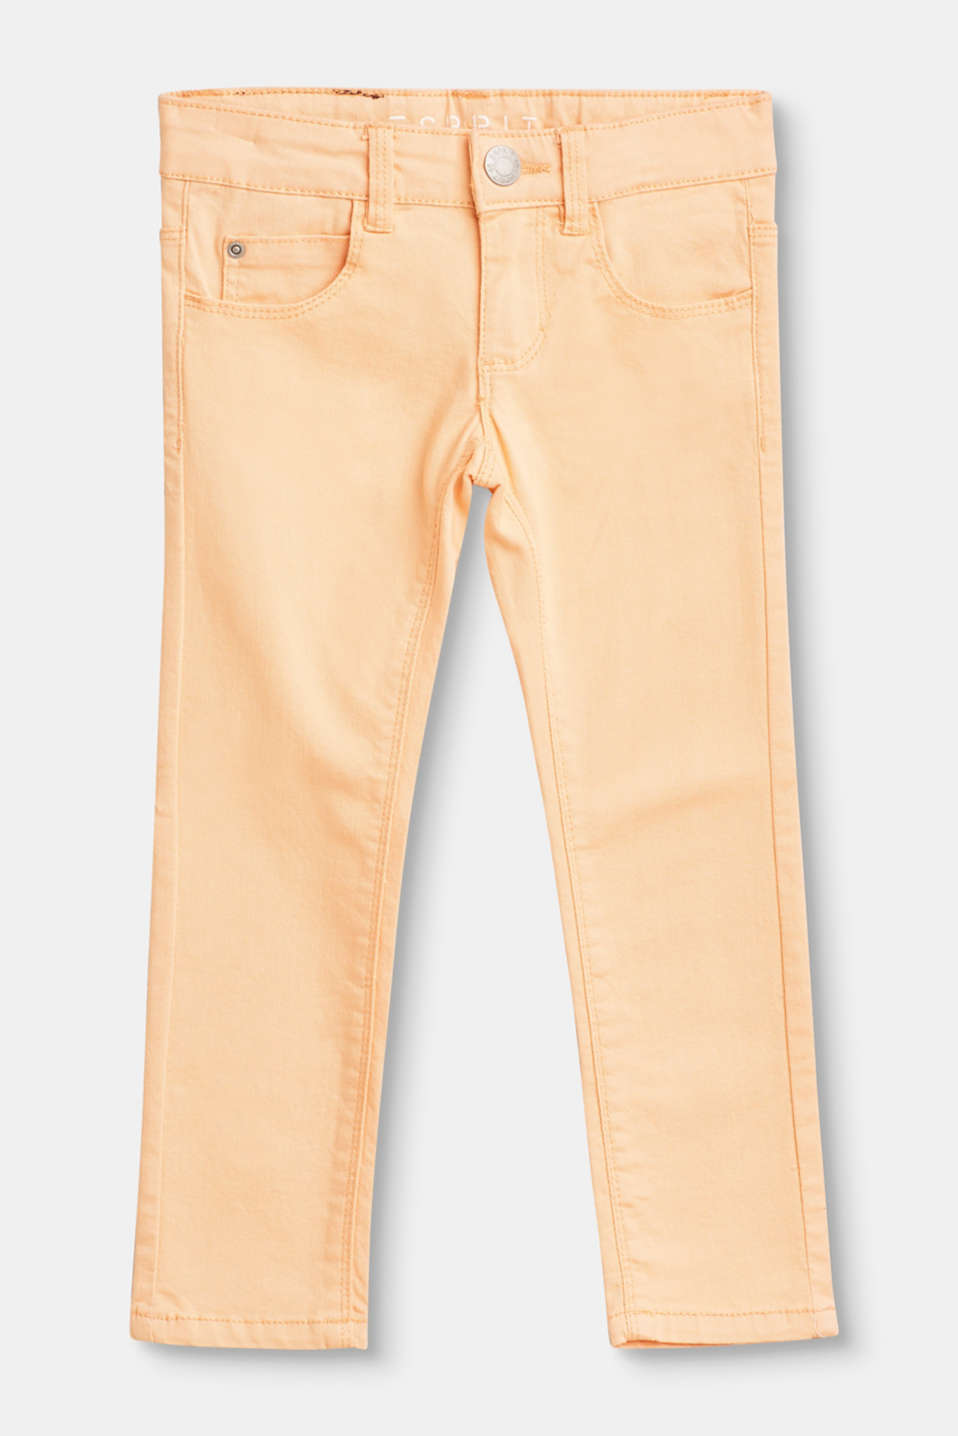 Esprit - Five-pocket trousers in stretch cotton